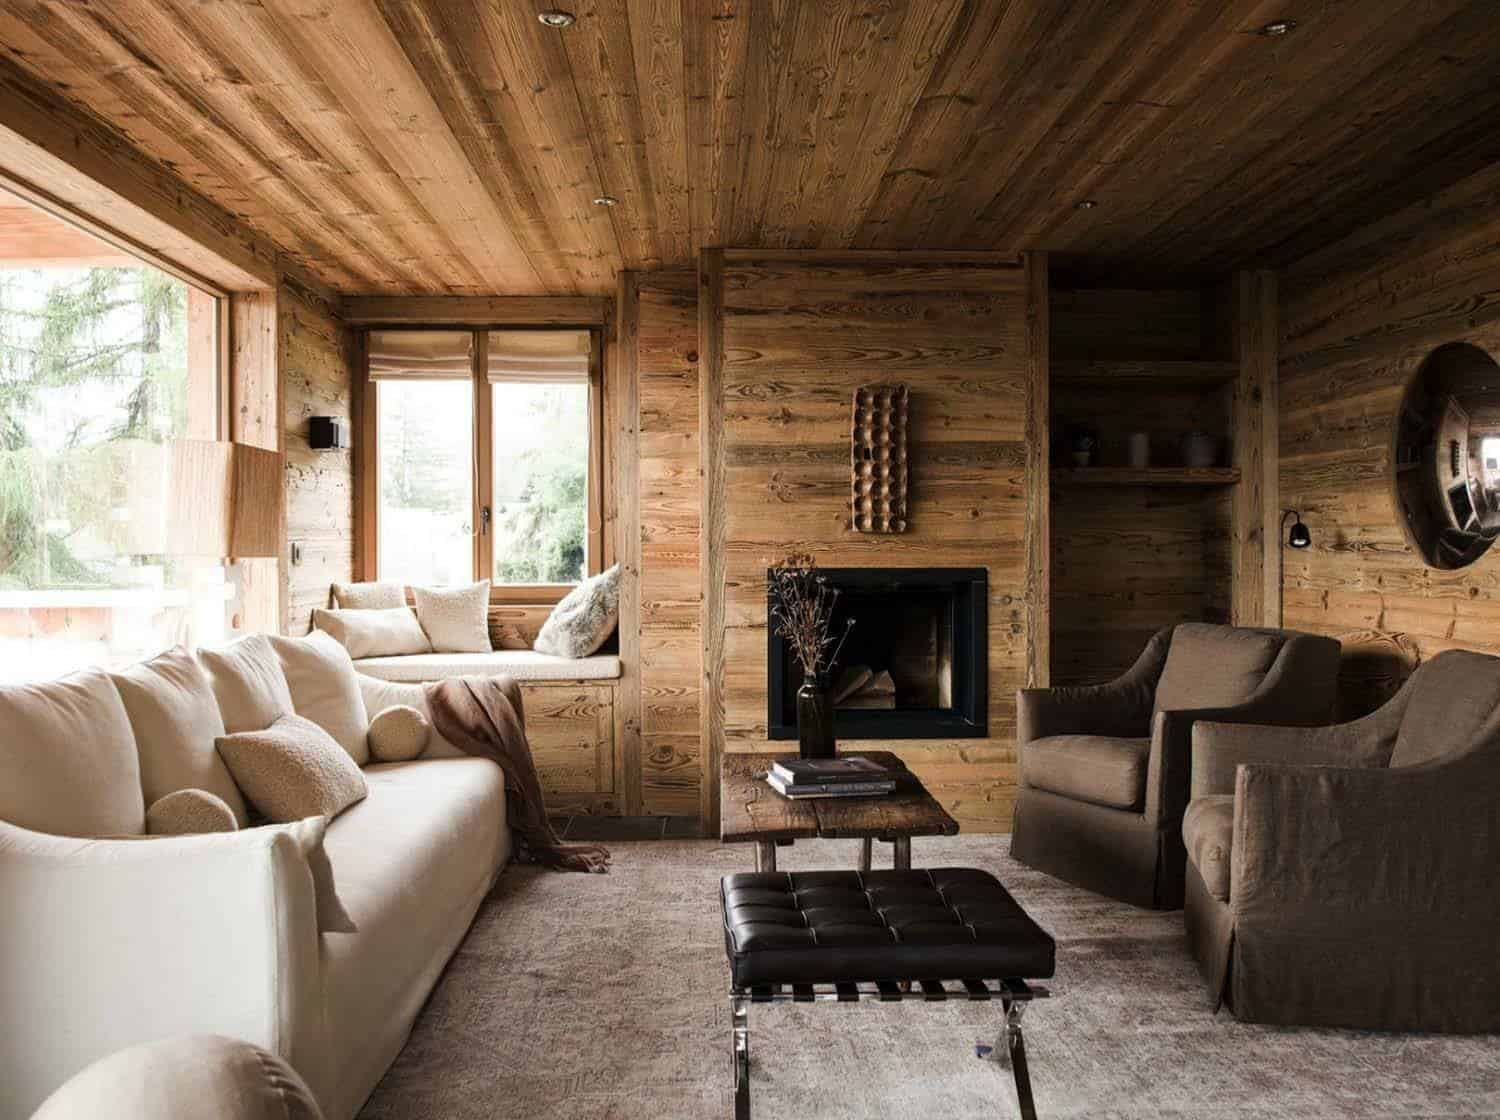 rustic mountain chalet in switzerland provides relaxed interiors. Black Bedroom Furniture Sets. Home Design Ideas